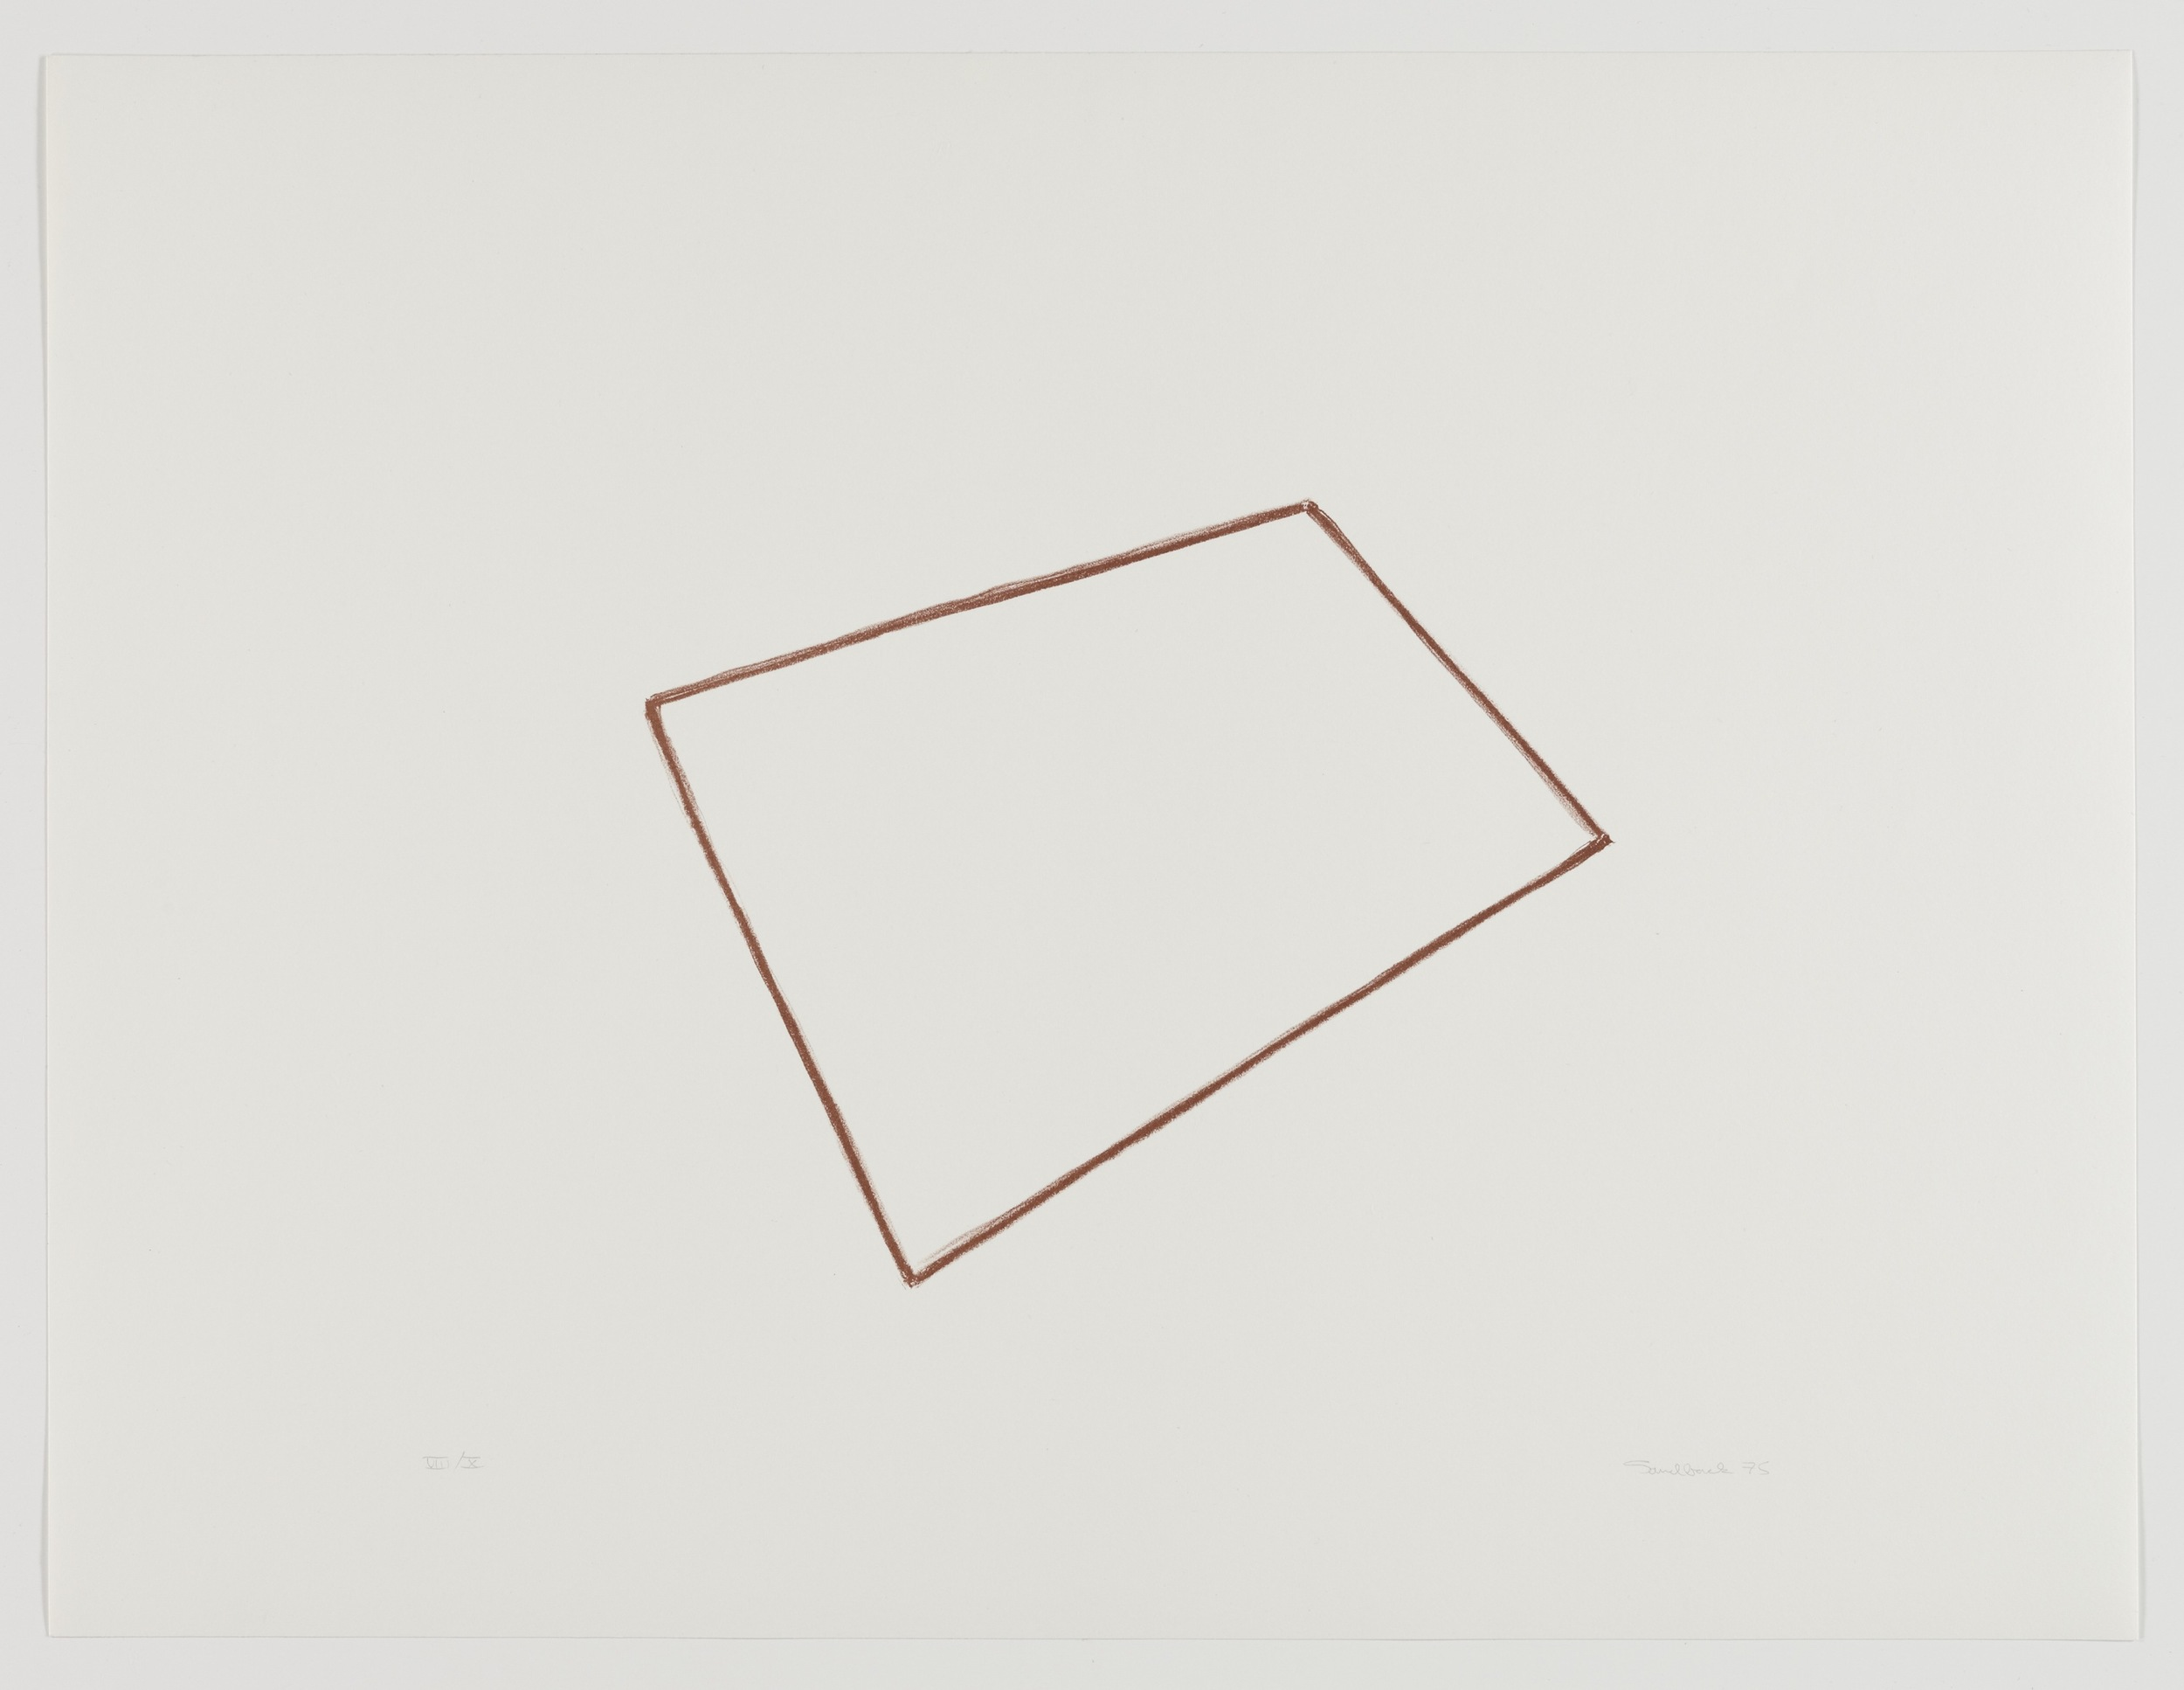 Fred Sandback, Untitled, 1975, Lithograph on handmade paper